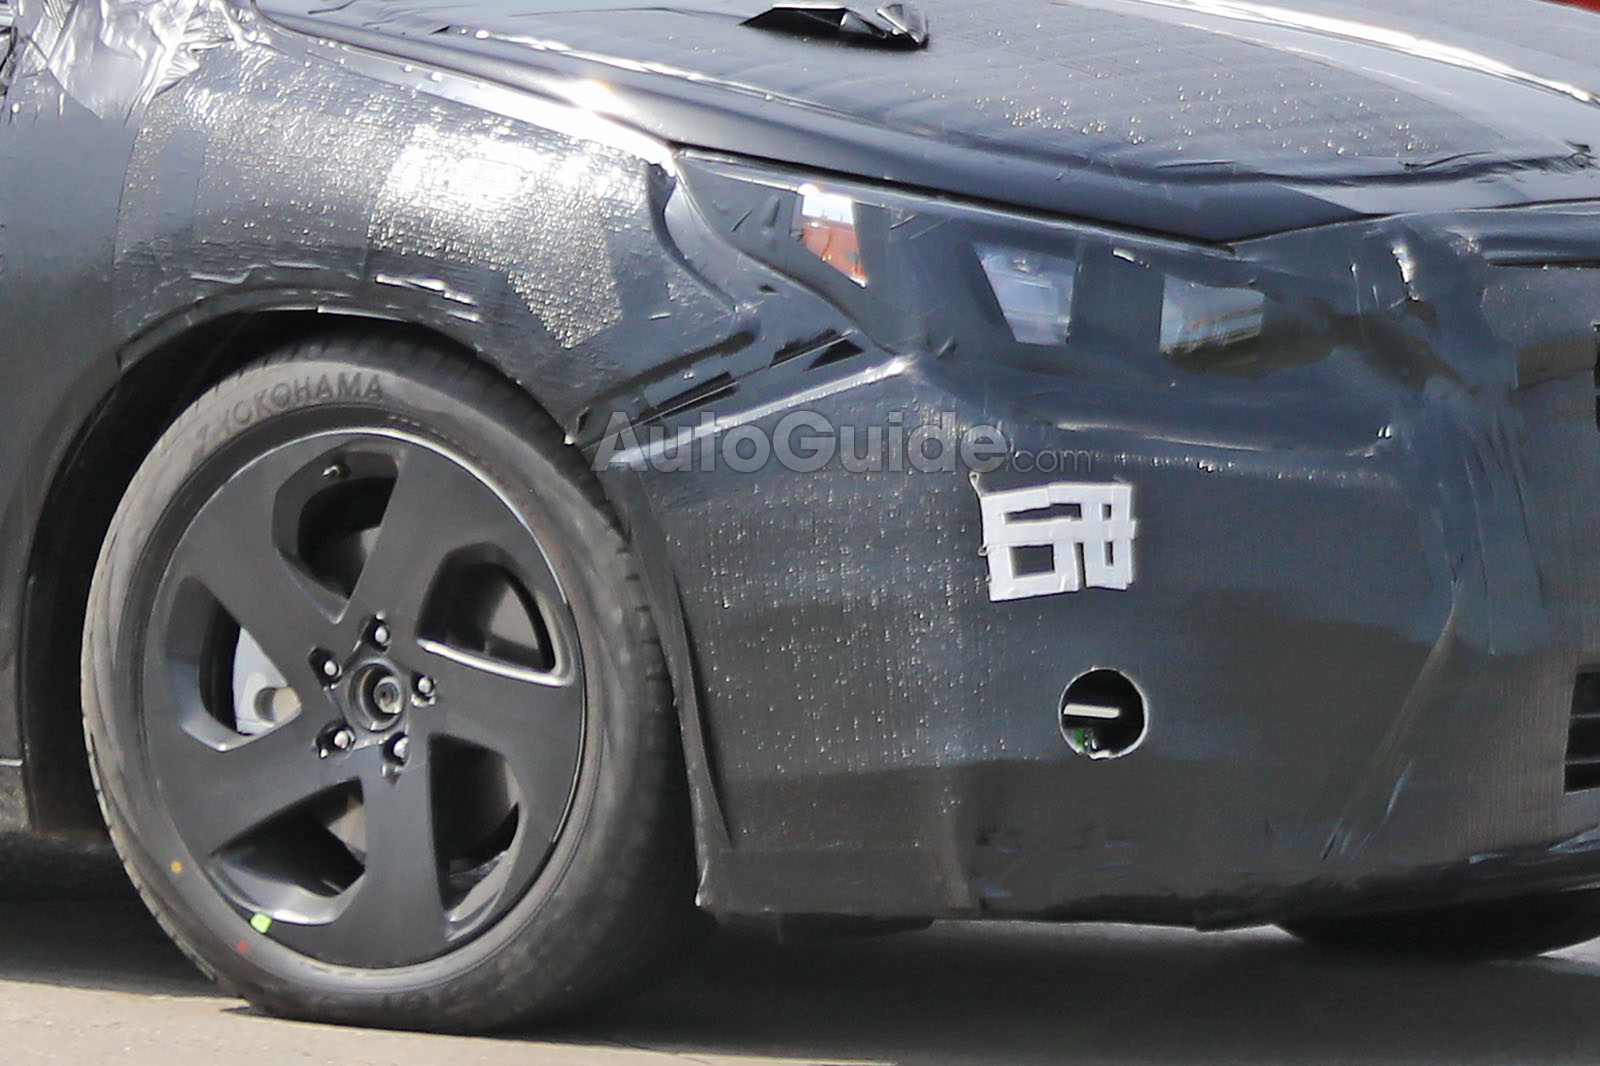 2020 Subaru Legacy Spied Looking More Chiseled » AutoGuide